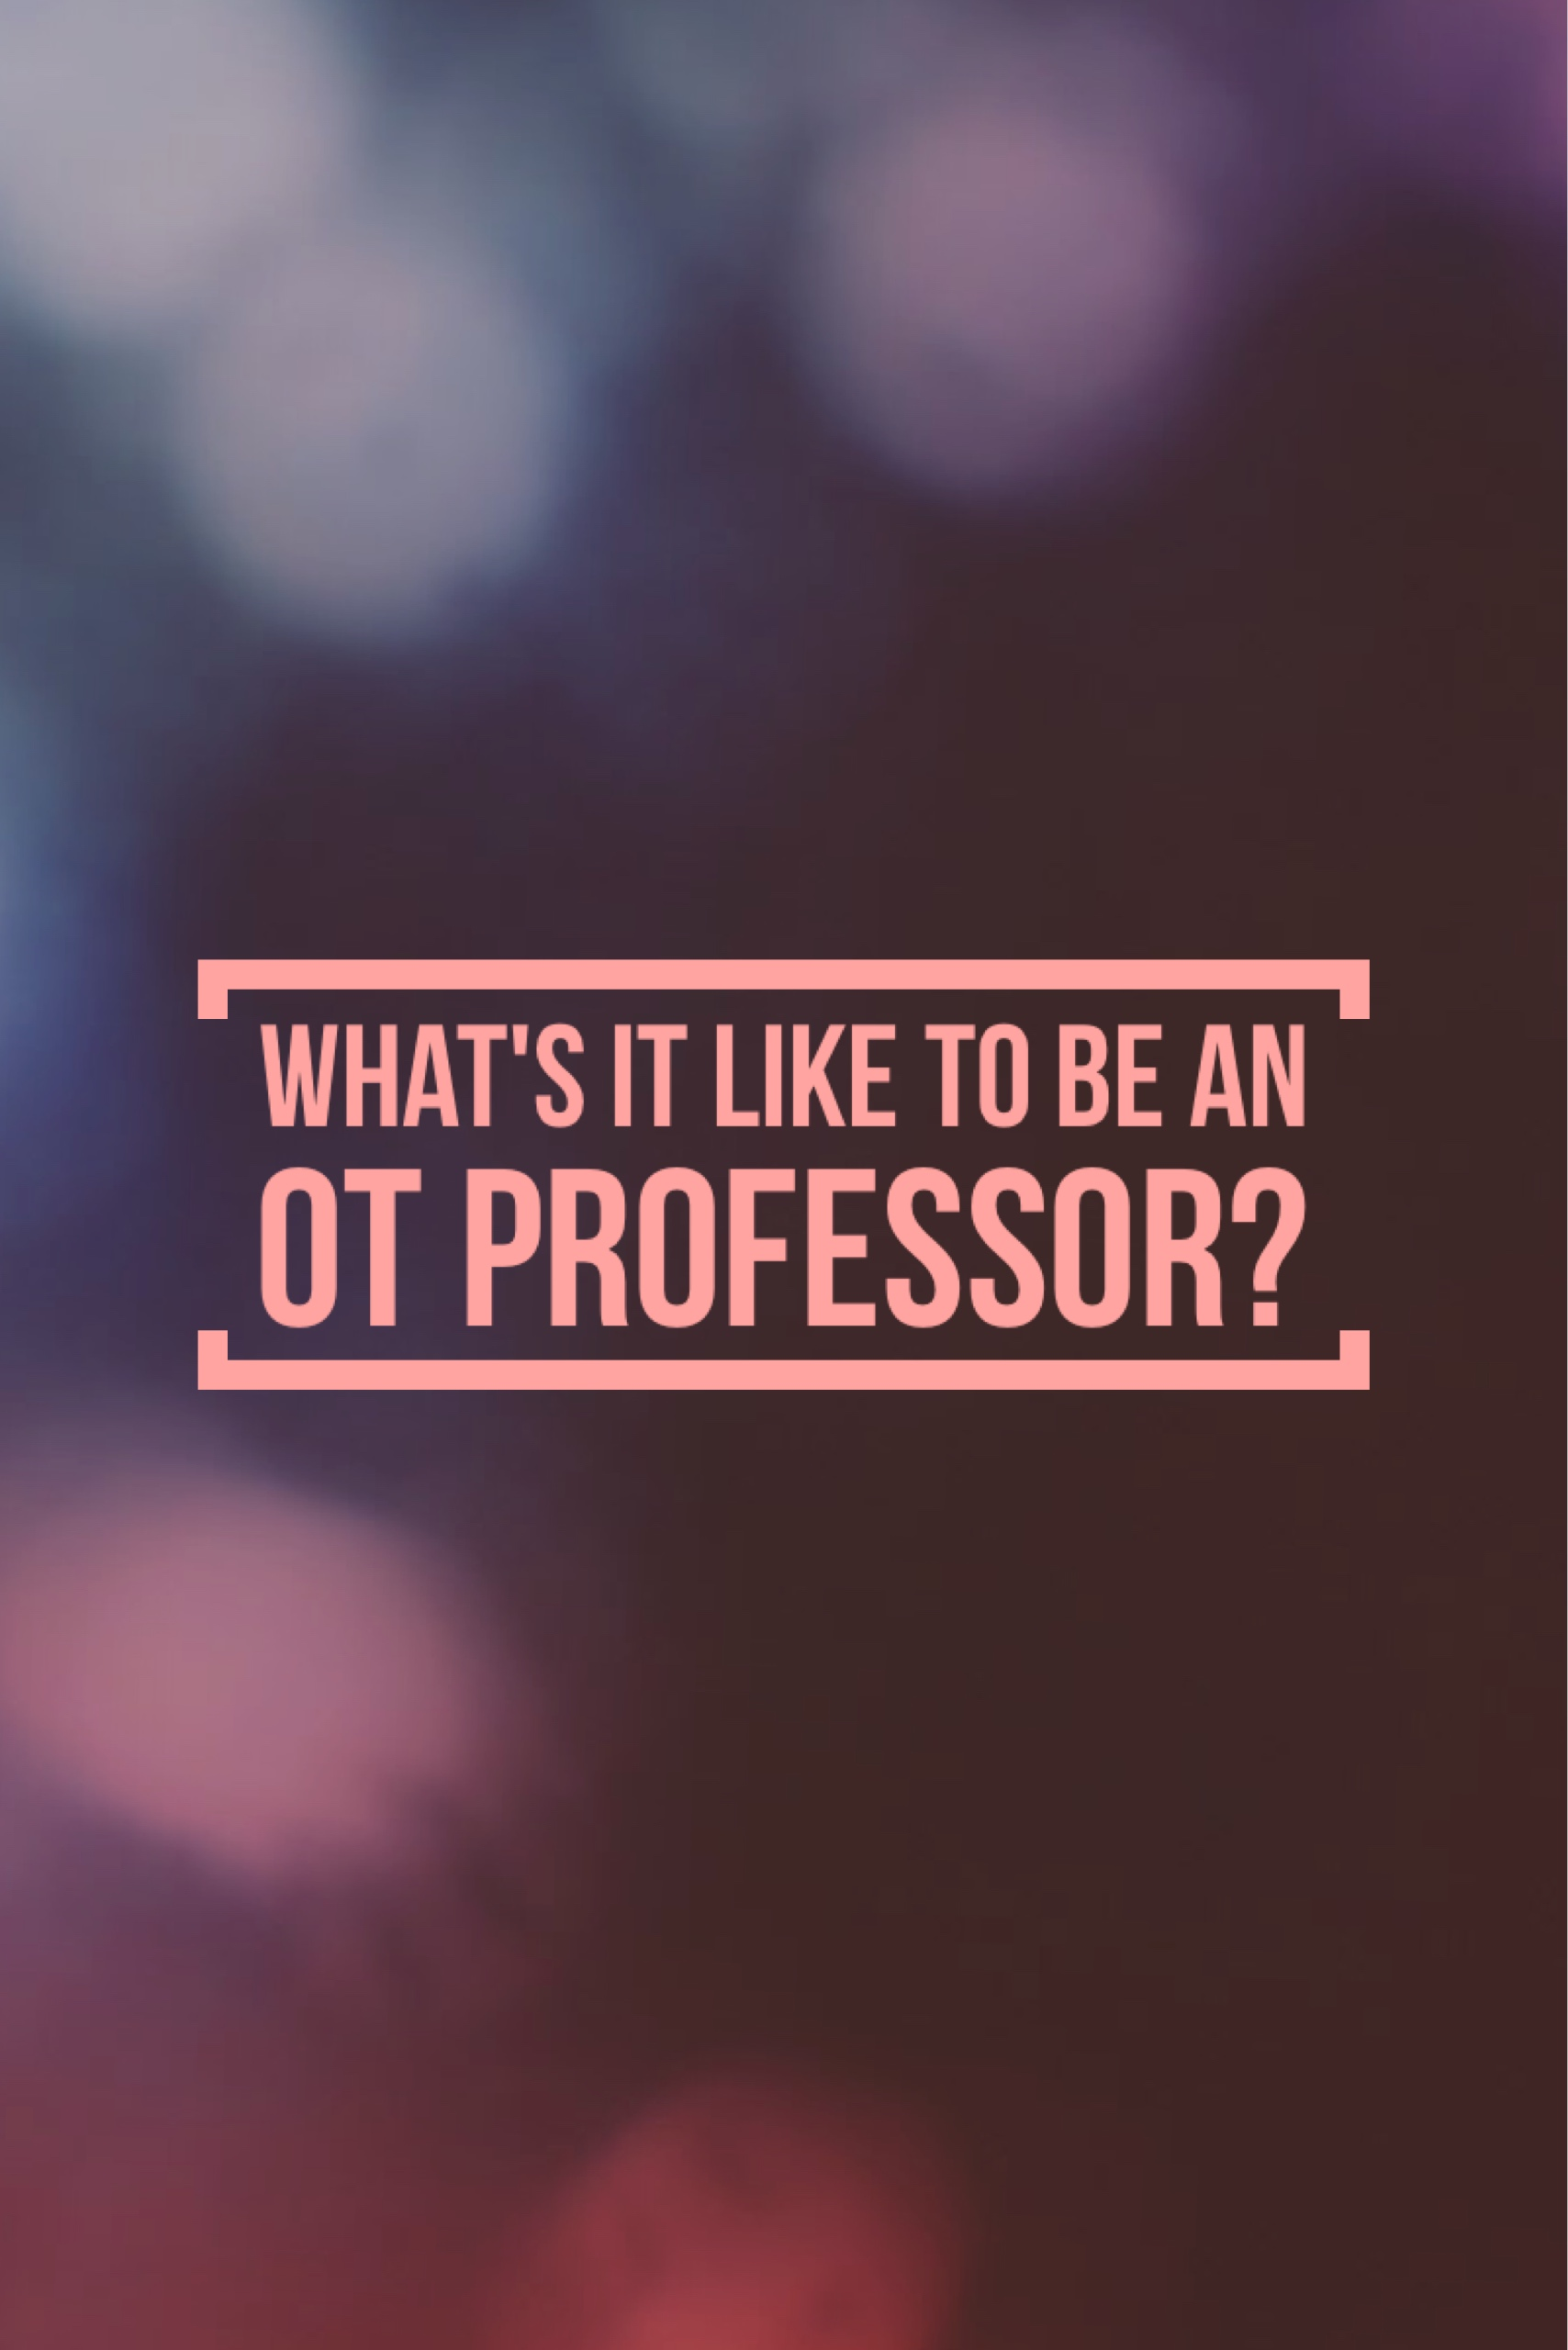 What's it like to be an OT professor?